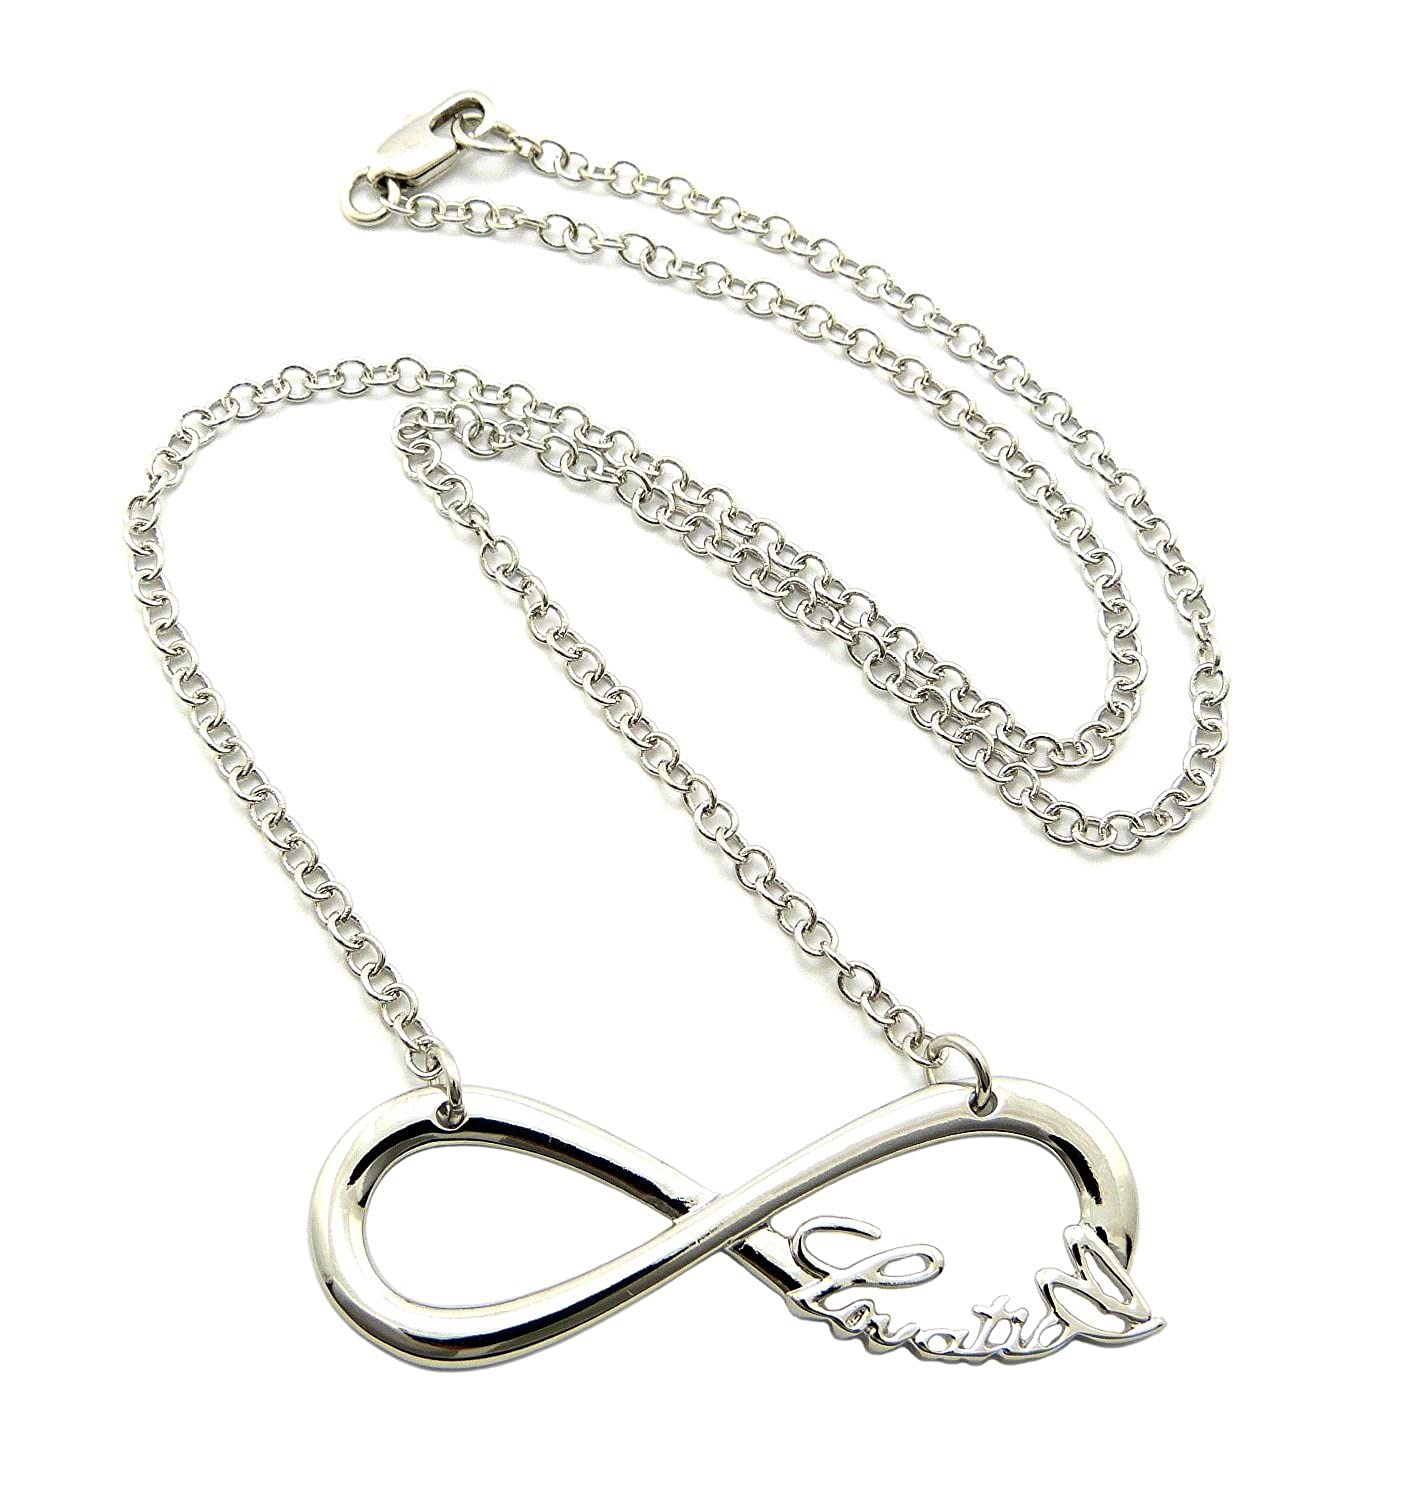 infinity sign handcuffs products shineon necklace